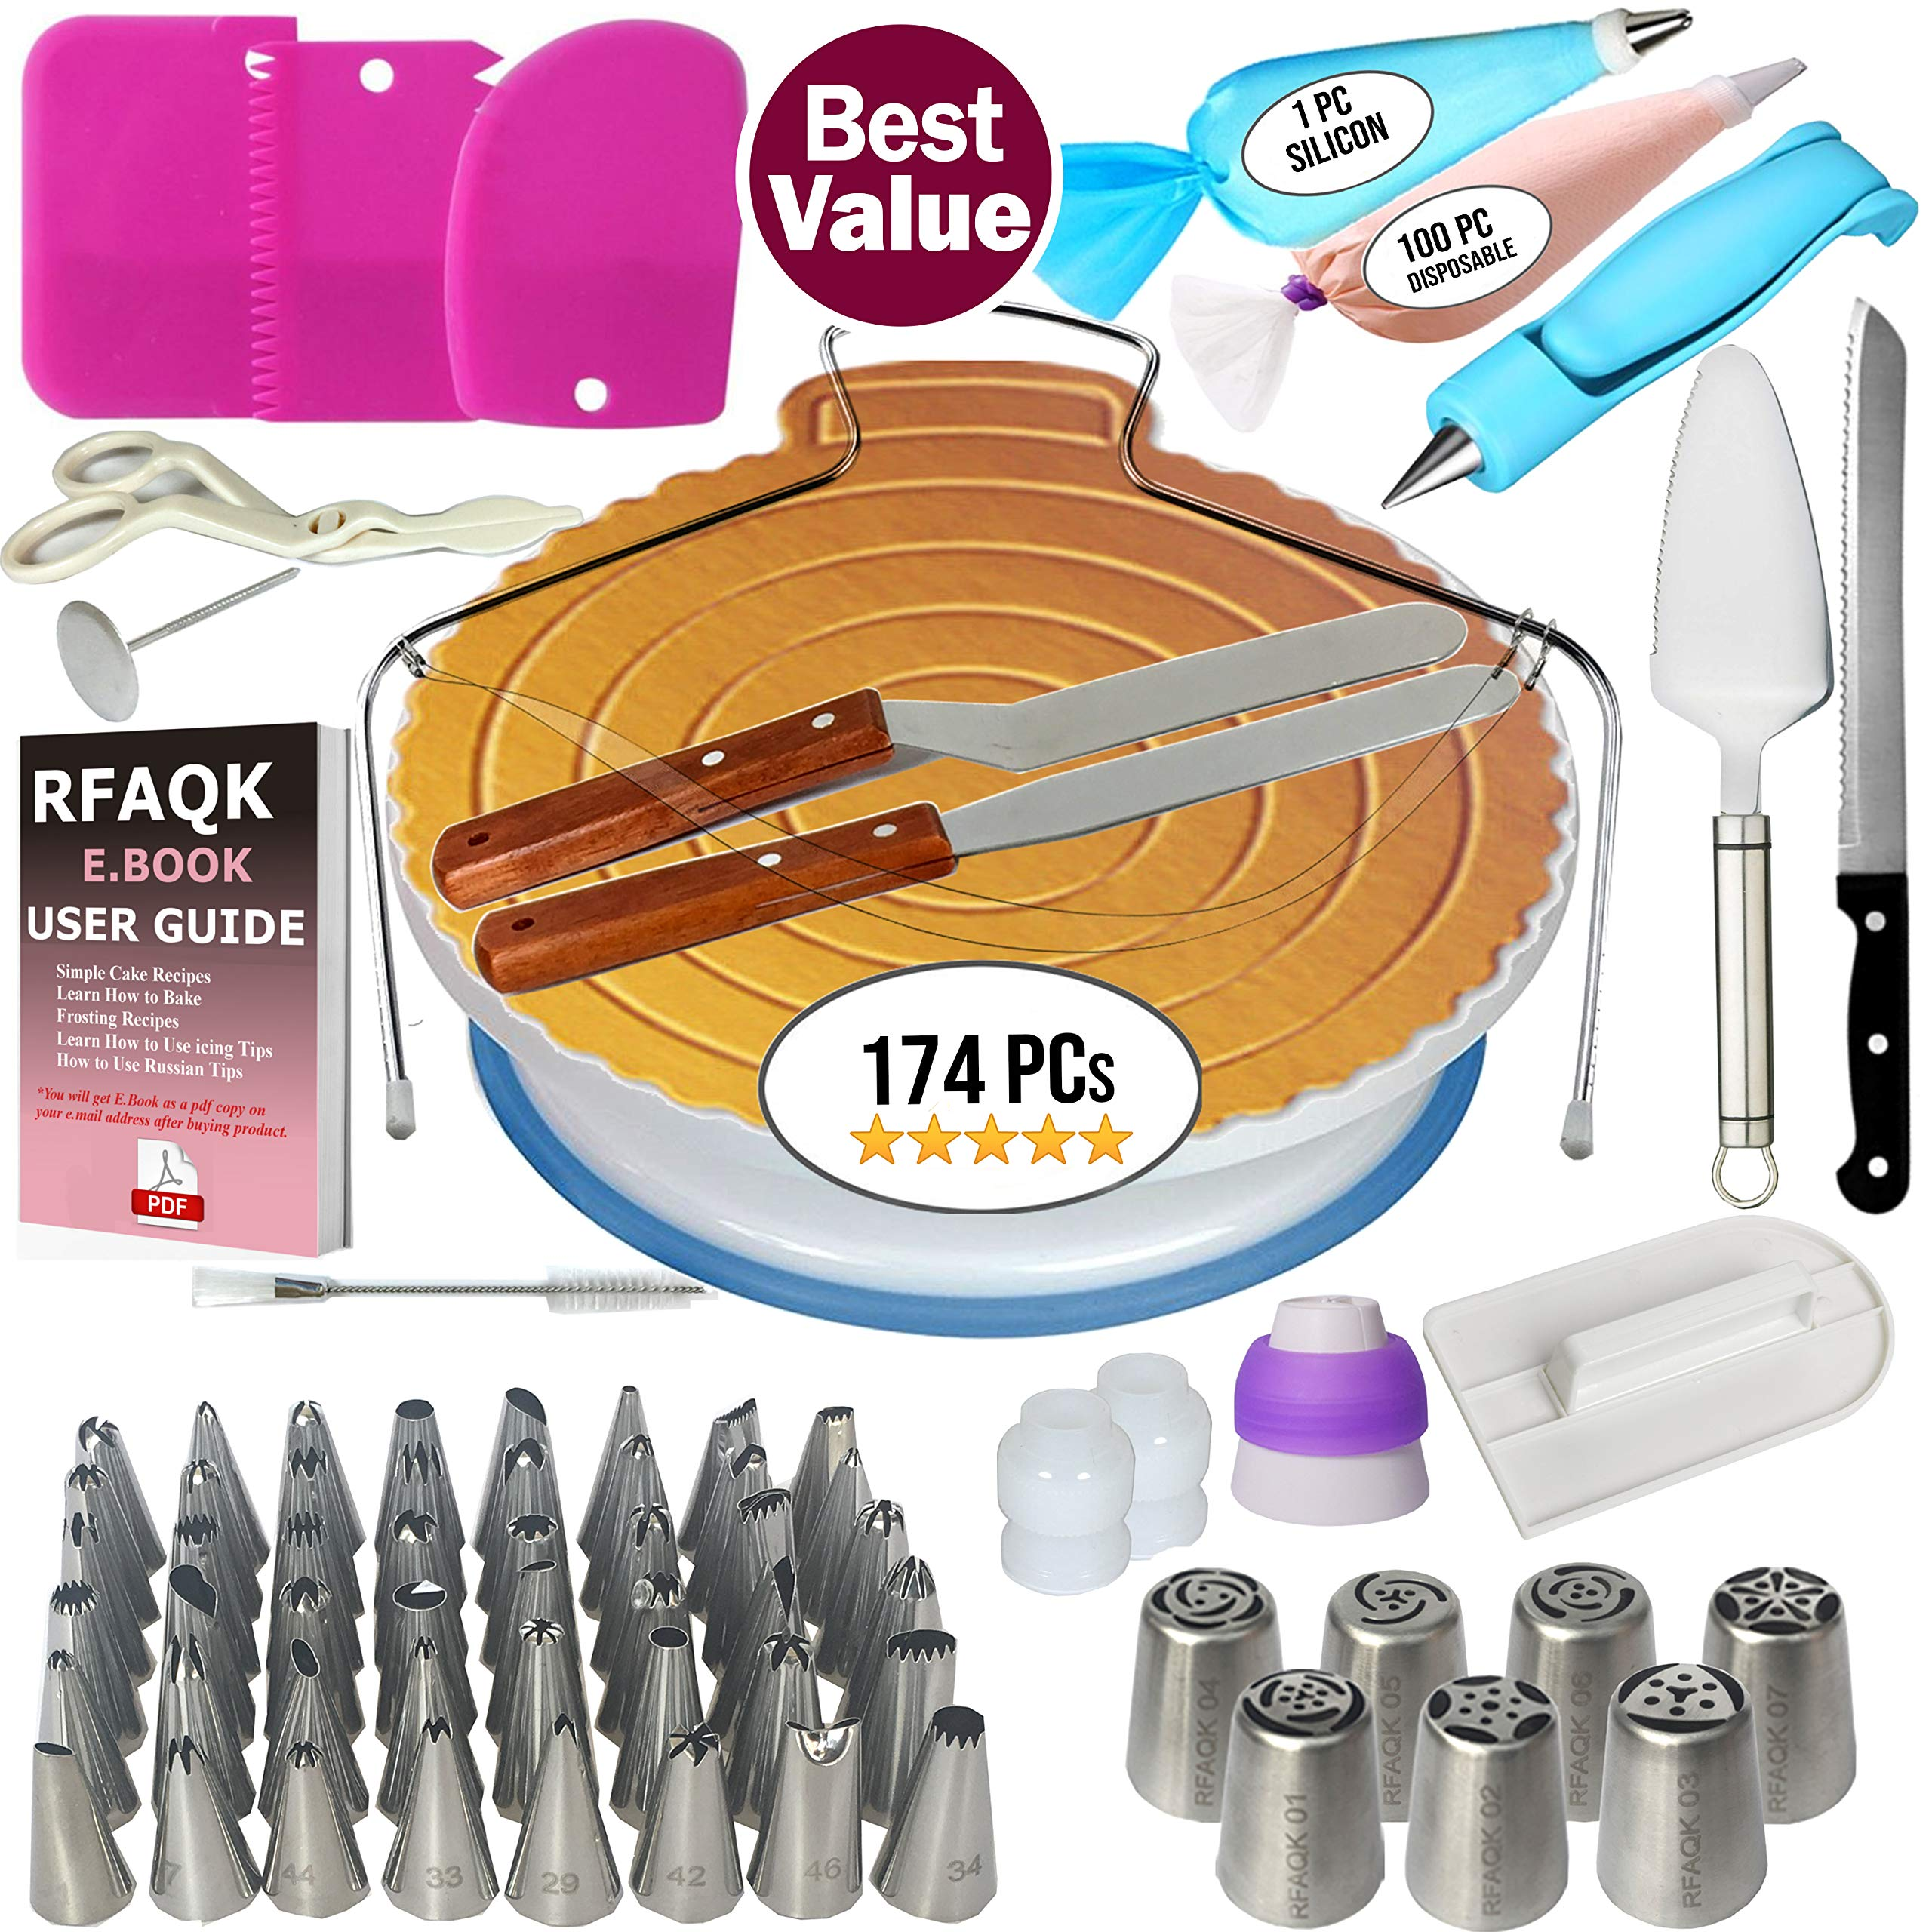 174 PCs Cake Decorating Supplies Kit for Beginners-1 Turntable stand- Cake server & knife set-48 Numbered Easy to use icing tips with pattern chart and E.Book-7 Russian Piping nozzles -2 Spatulas by RFAQK (Image #1)